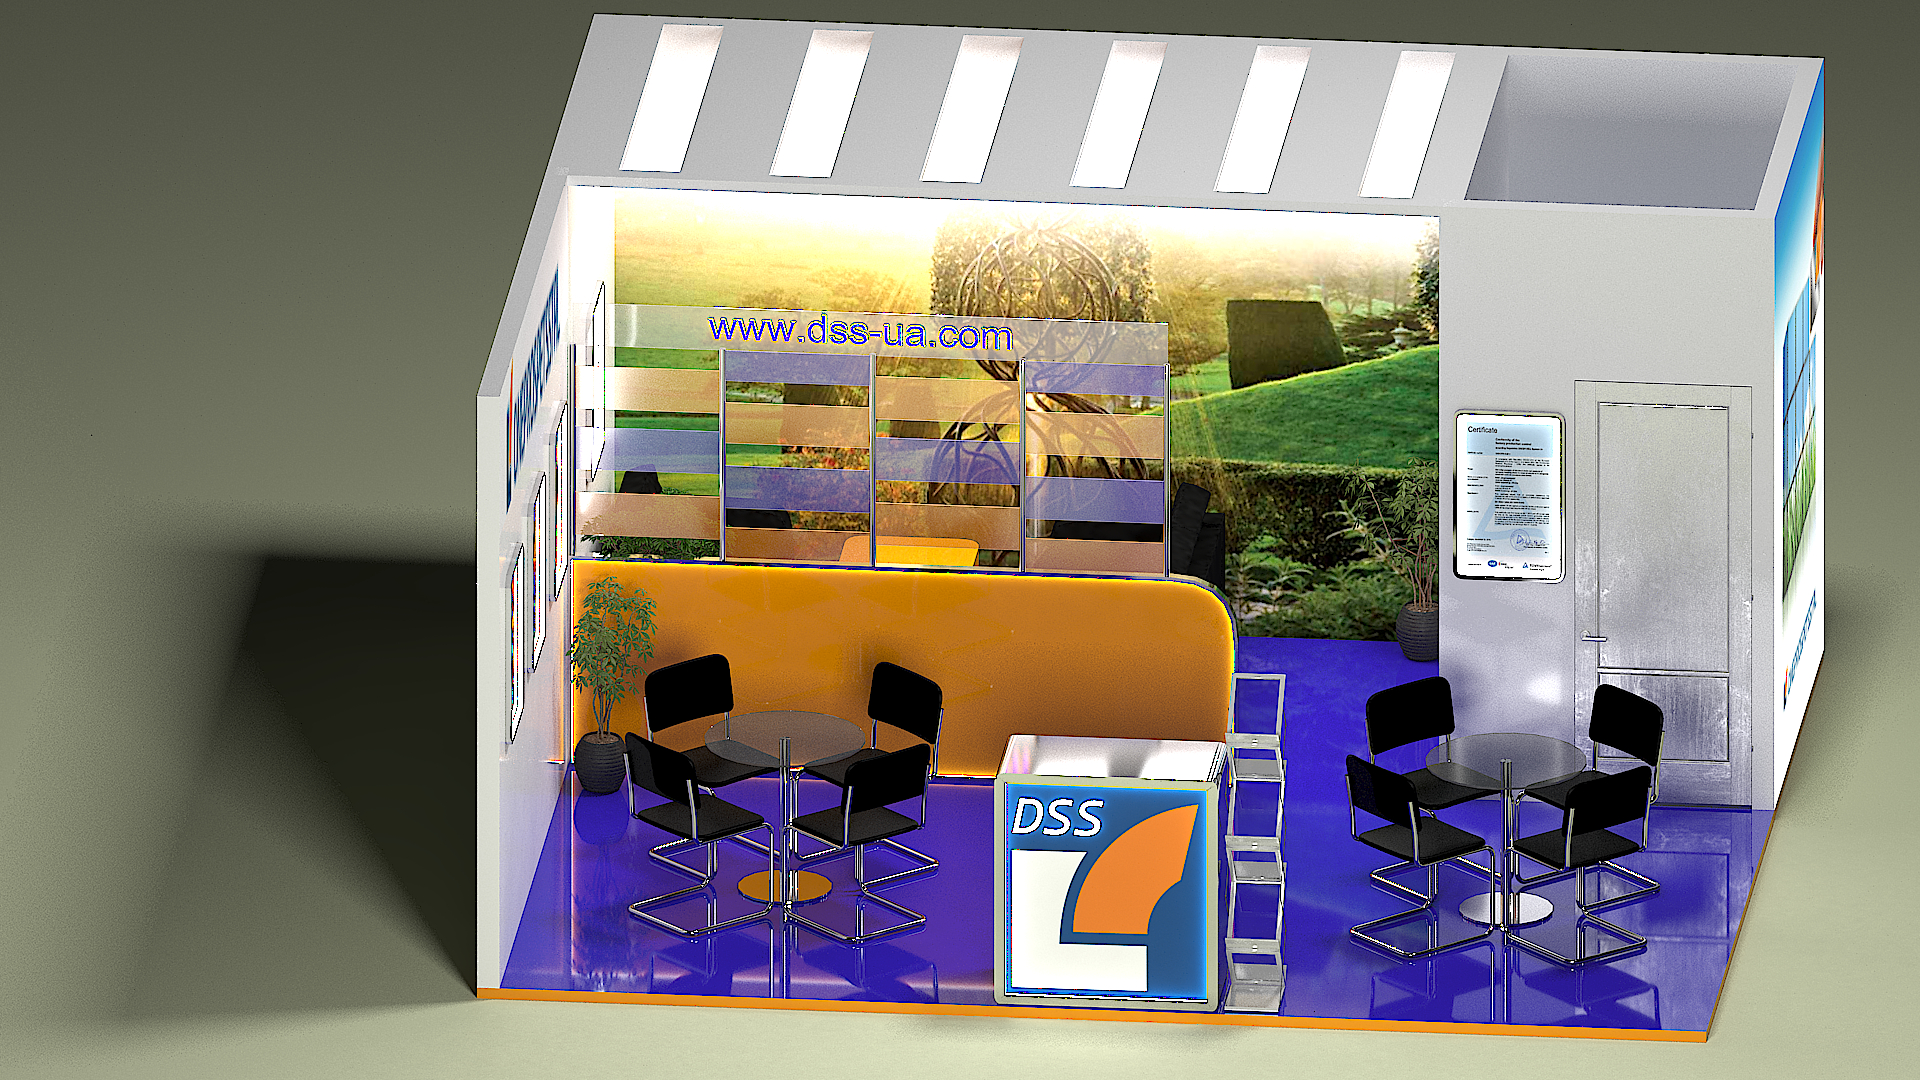 Exhibition Stand Design 3d Max : Exhibition stand dniprospetsstal d visualization and design work